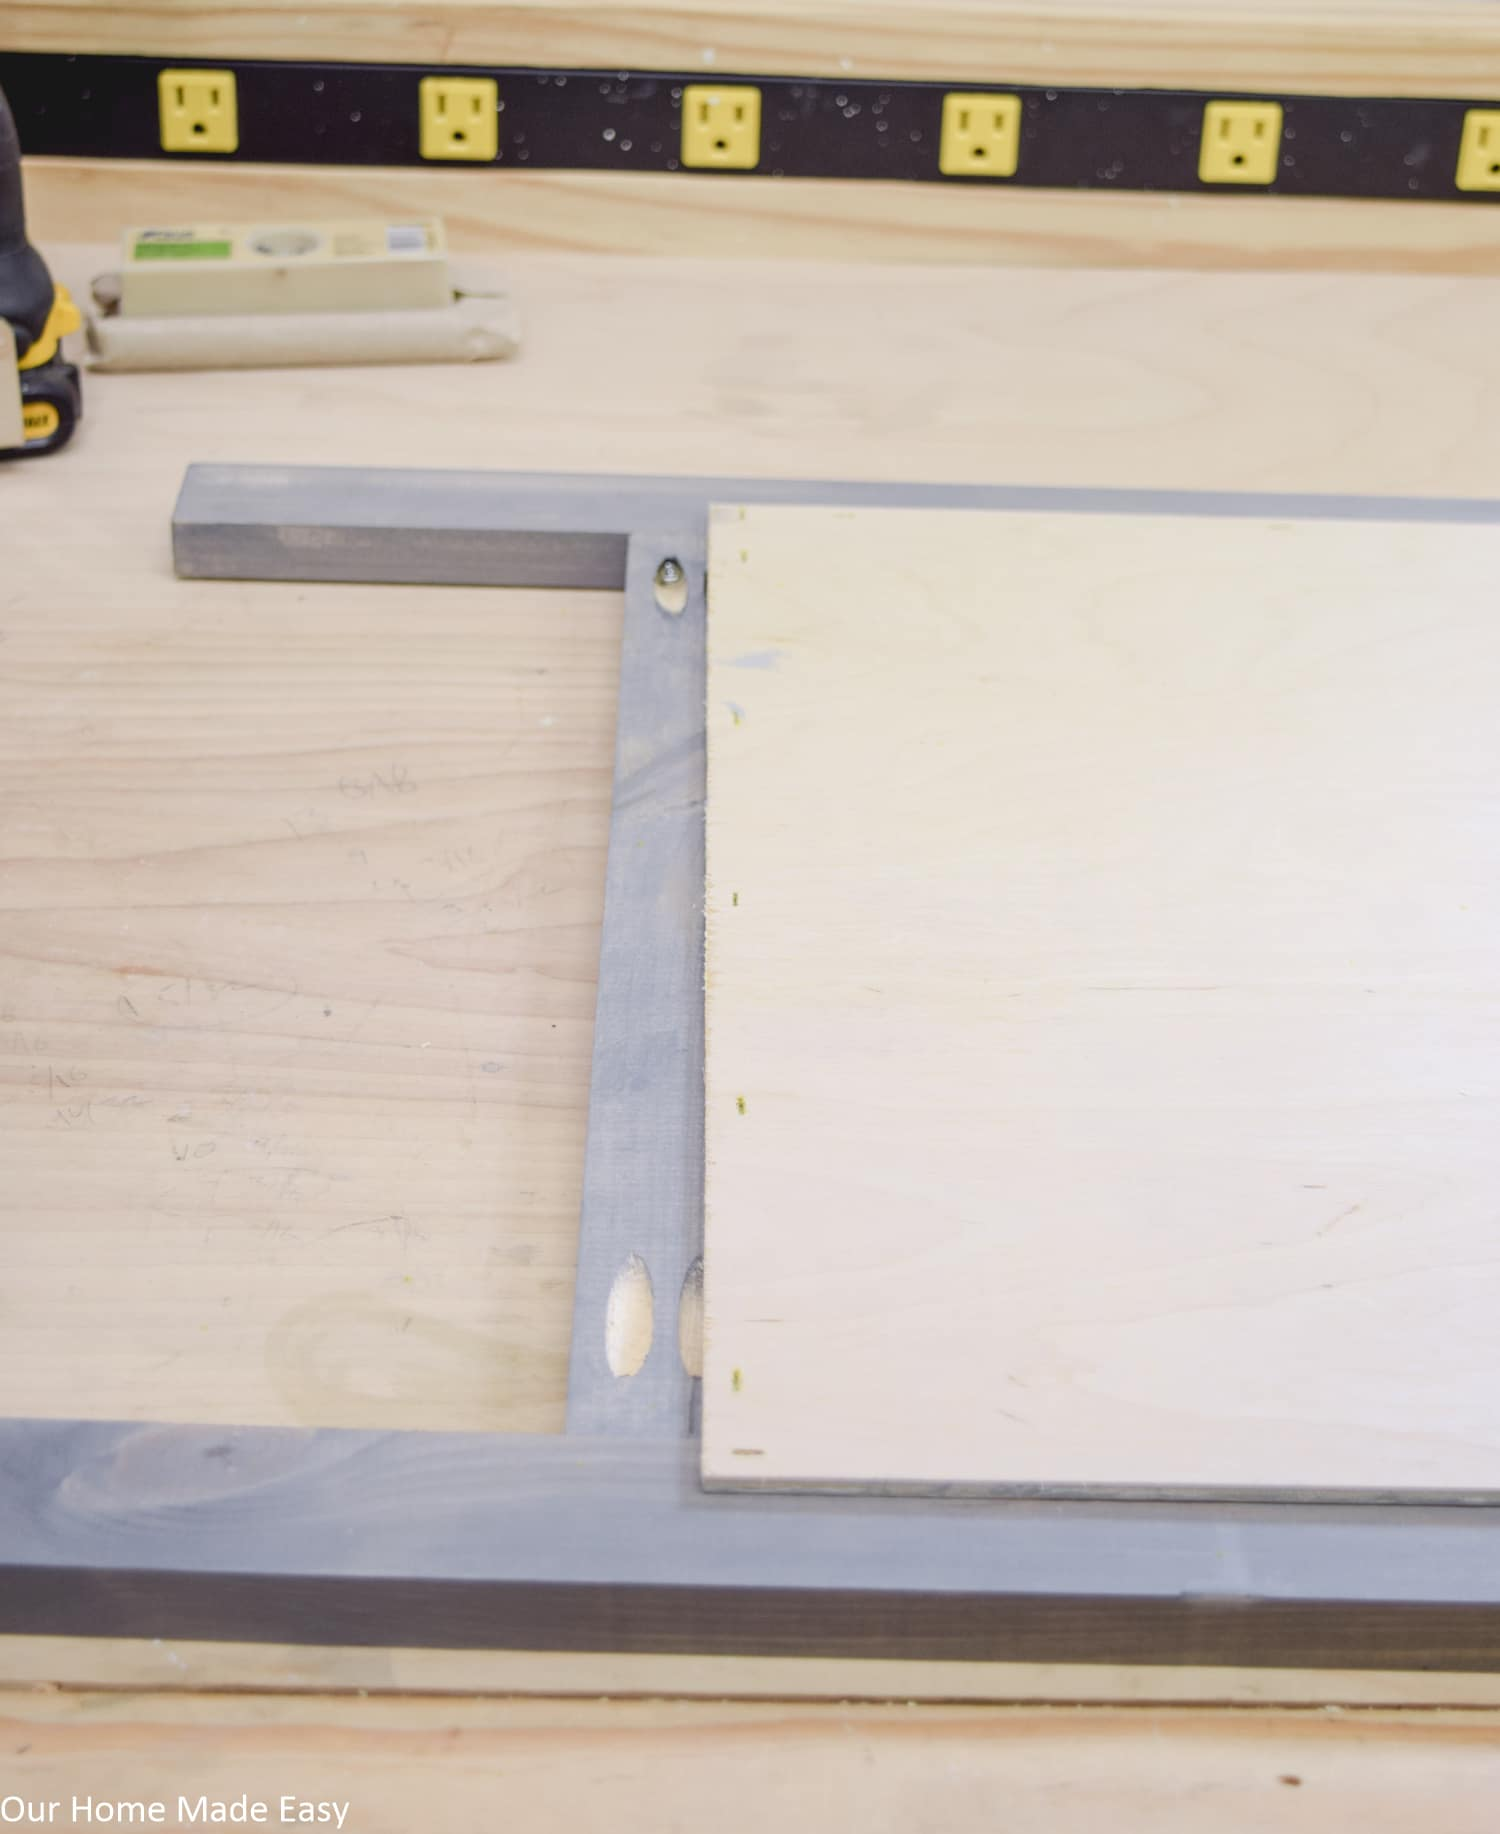 Pocket screws hold together the wooden sign frame, which we painted a rustic light blue gray